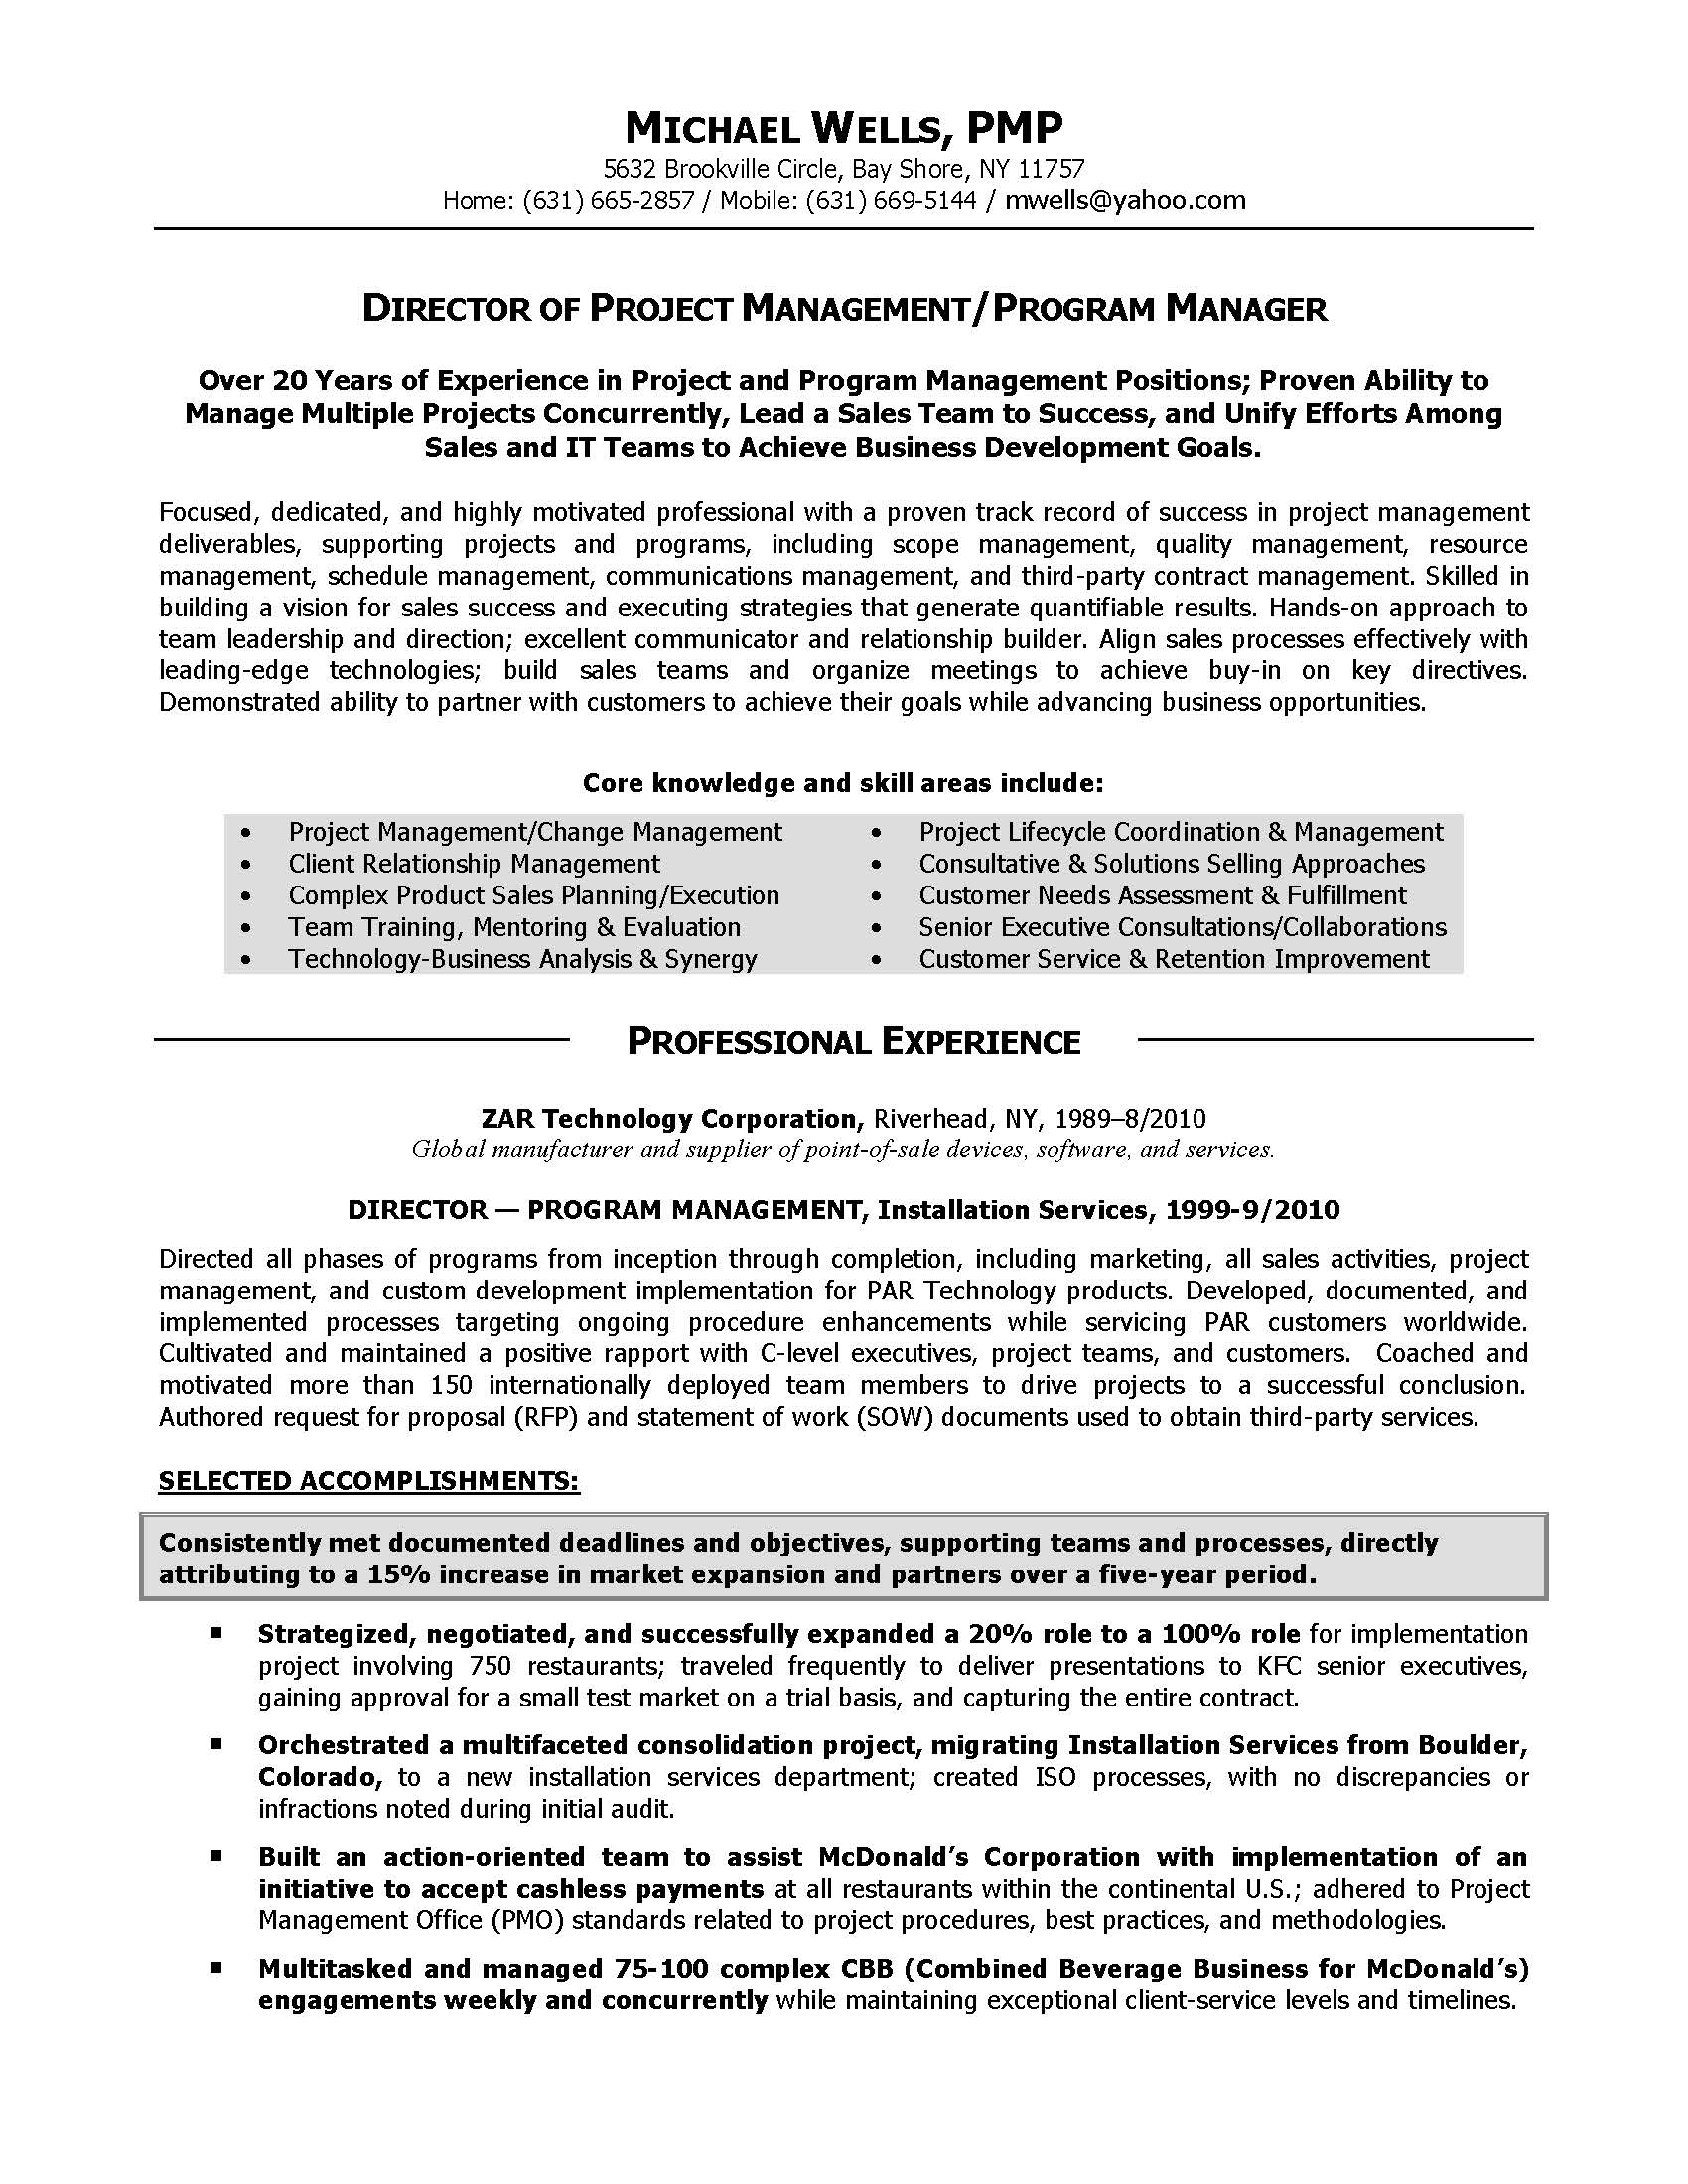 project management director resume sample provided by elite resume